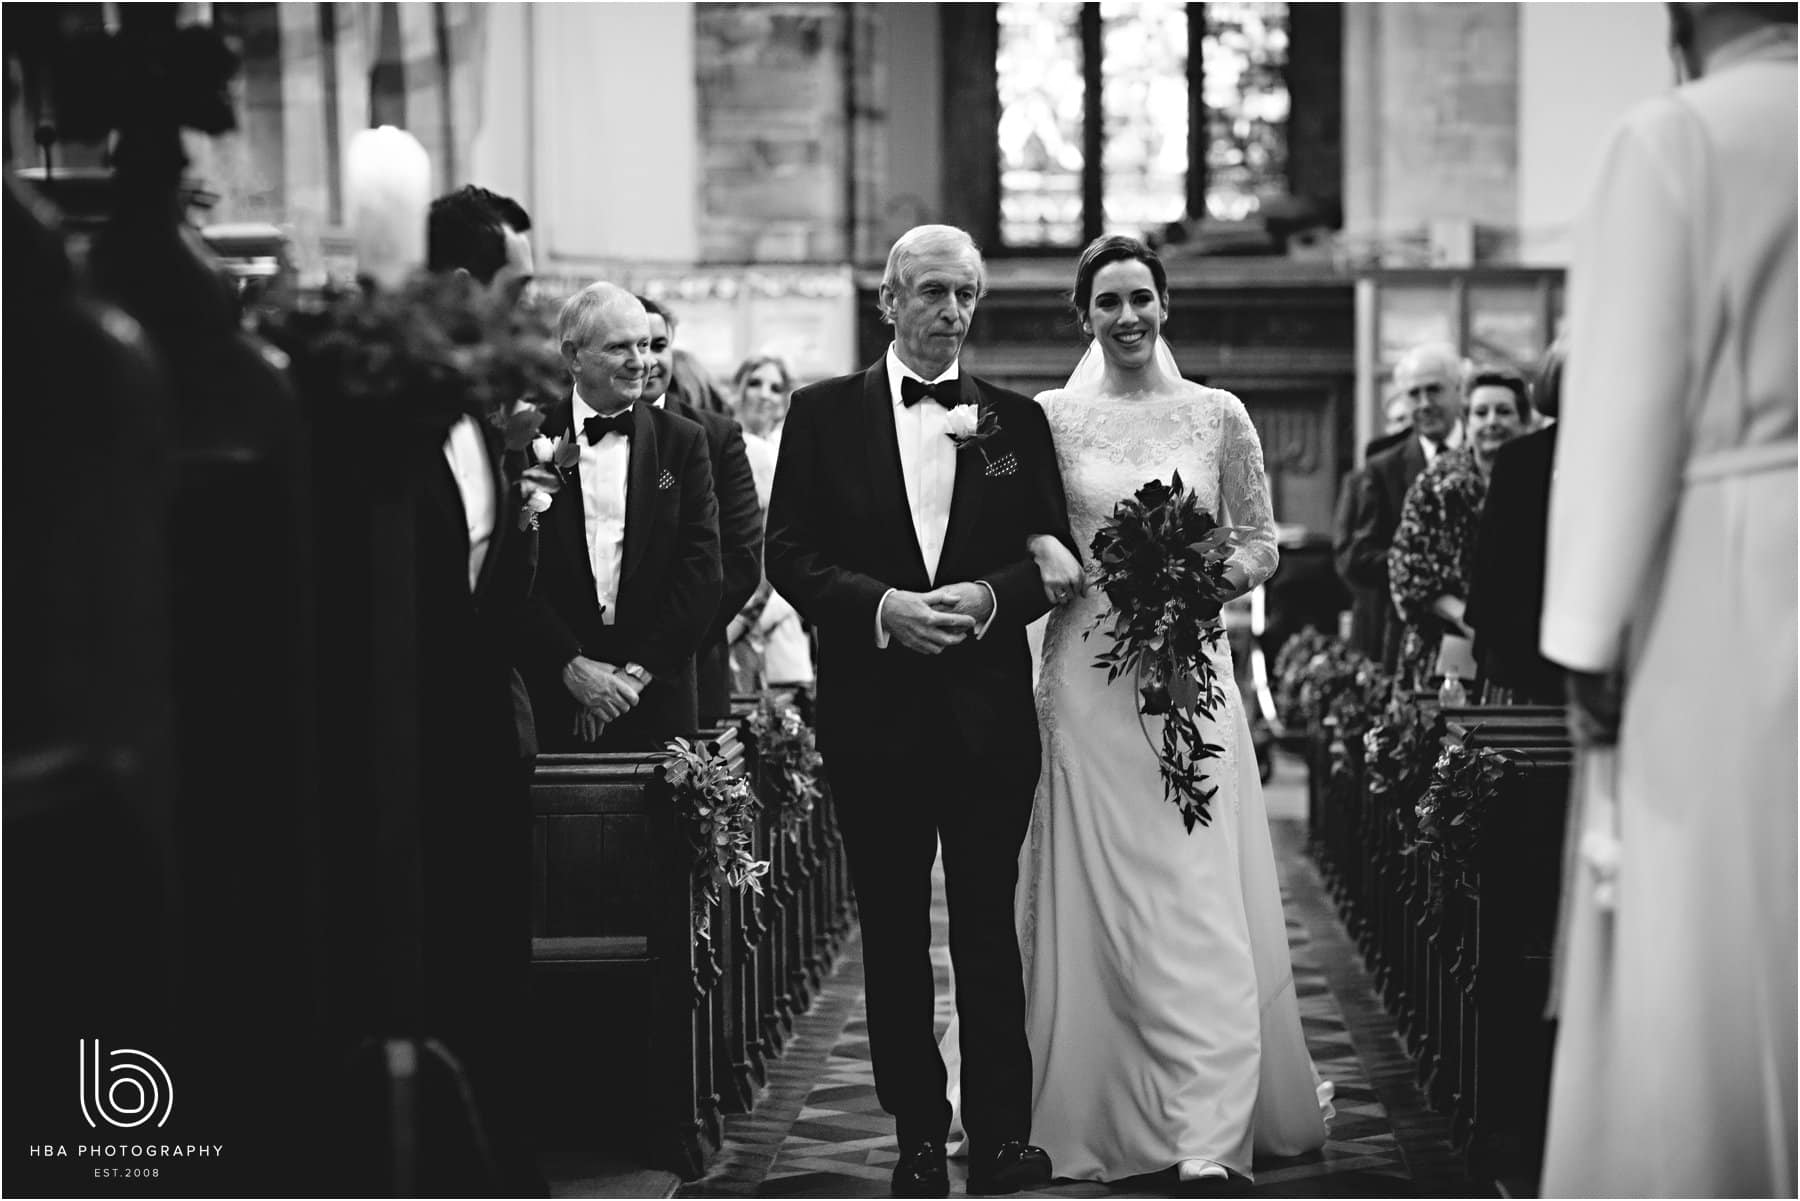 the bride and her father walking down the aisle